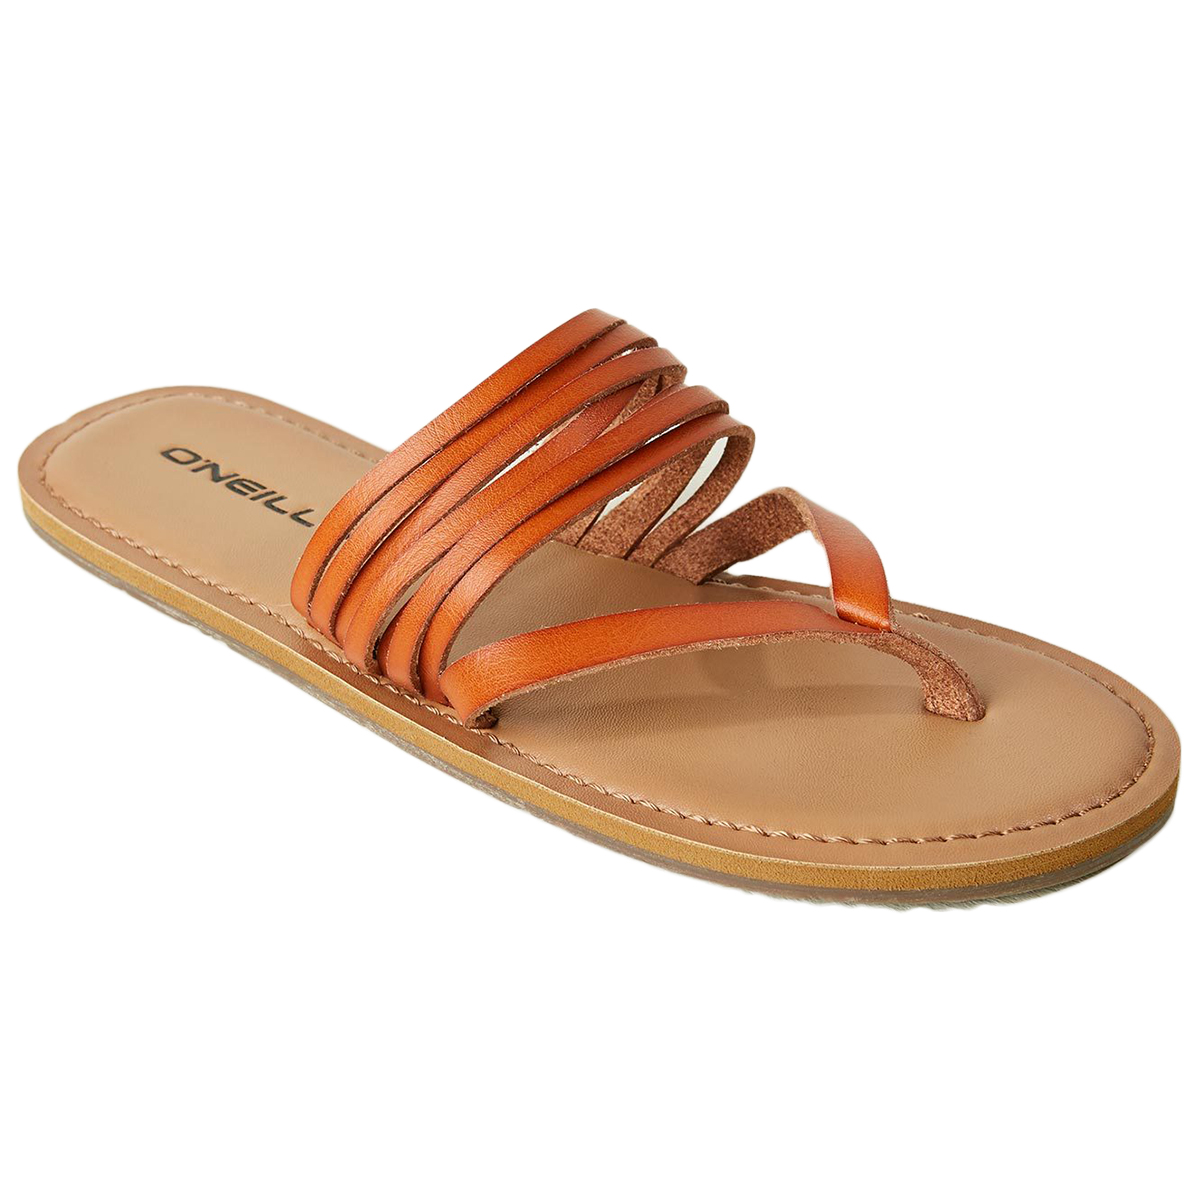 O'neill Women's Pasadena Thong Sandal - Brown, 8